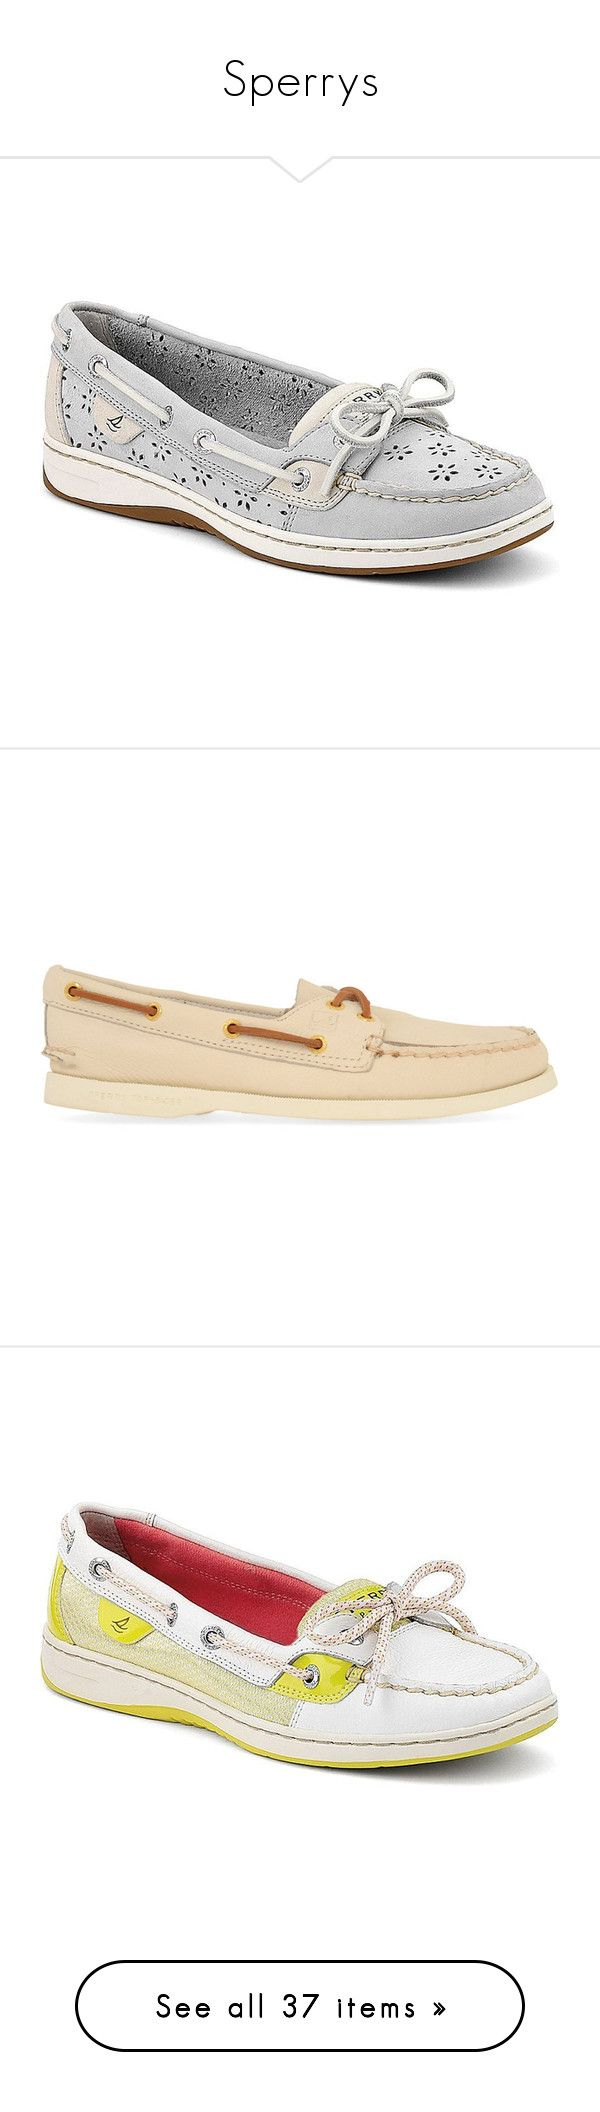 """Sperrys"" by beautyoftherain ❤ liked on Polyvore featuring shoes, loafers, flats, sperry, light gray perf leather, flat shoes, leather flat shoes, sperry topsiders, perforated flats and leather shoes"